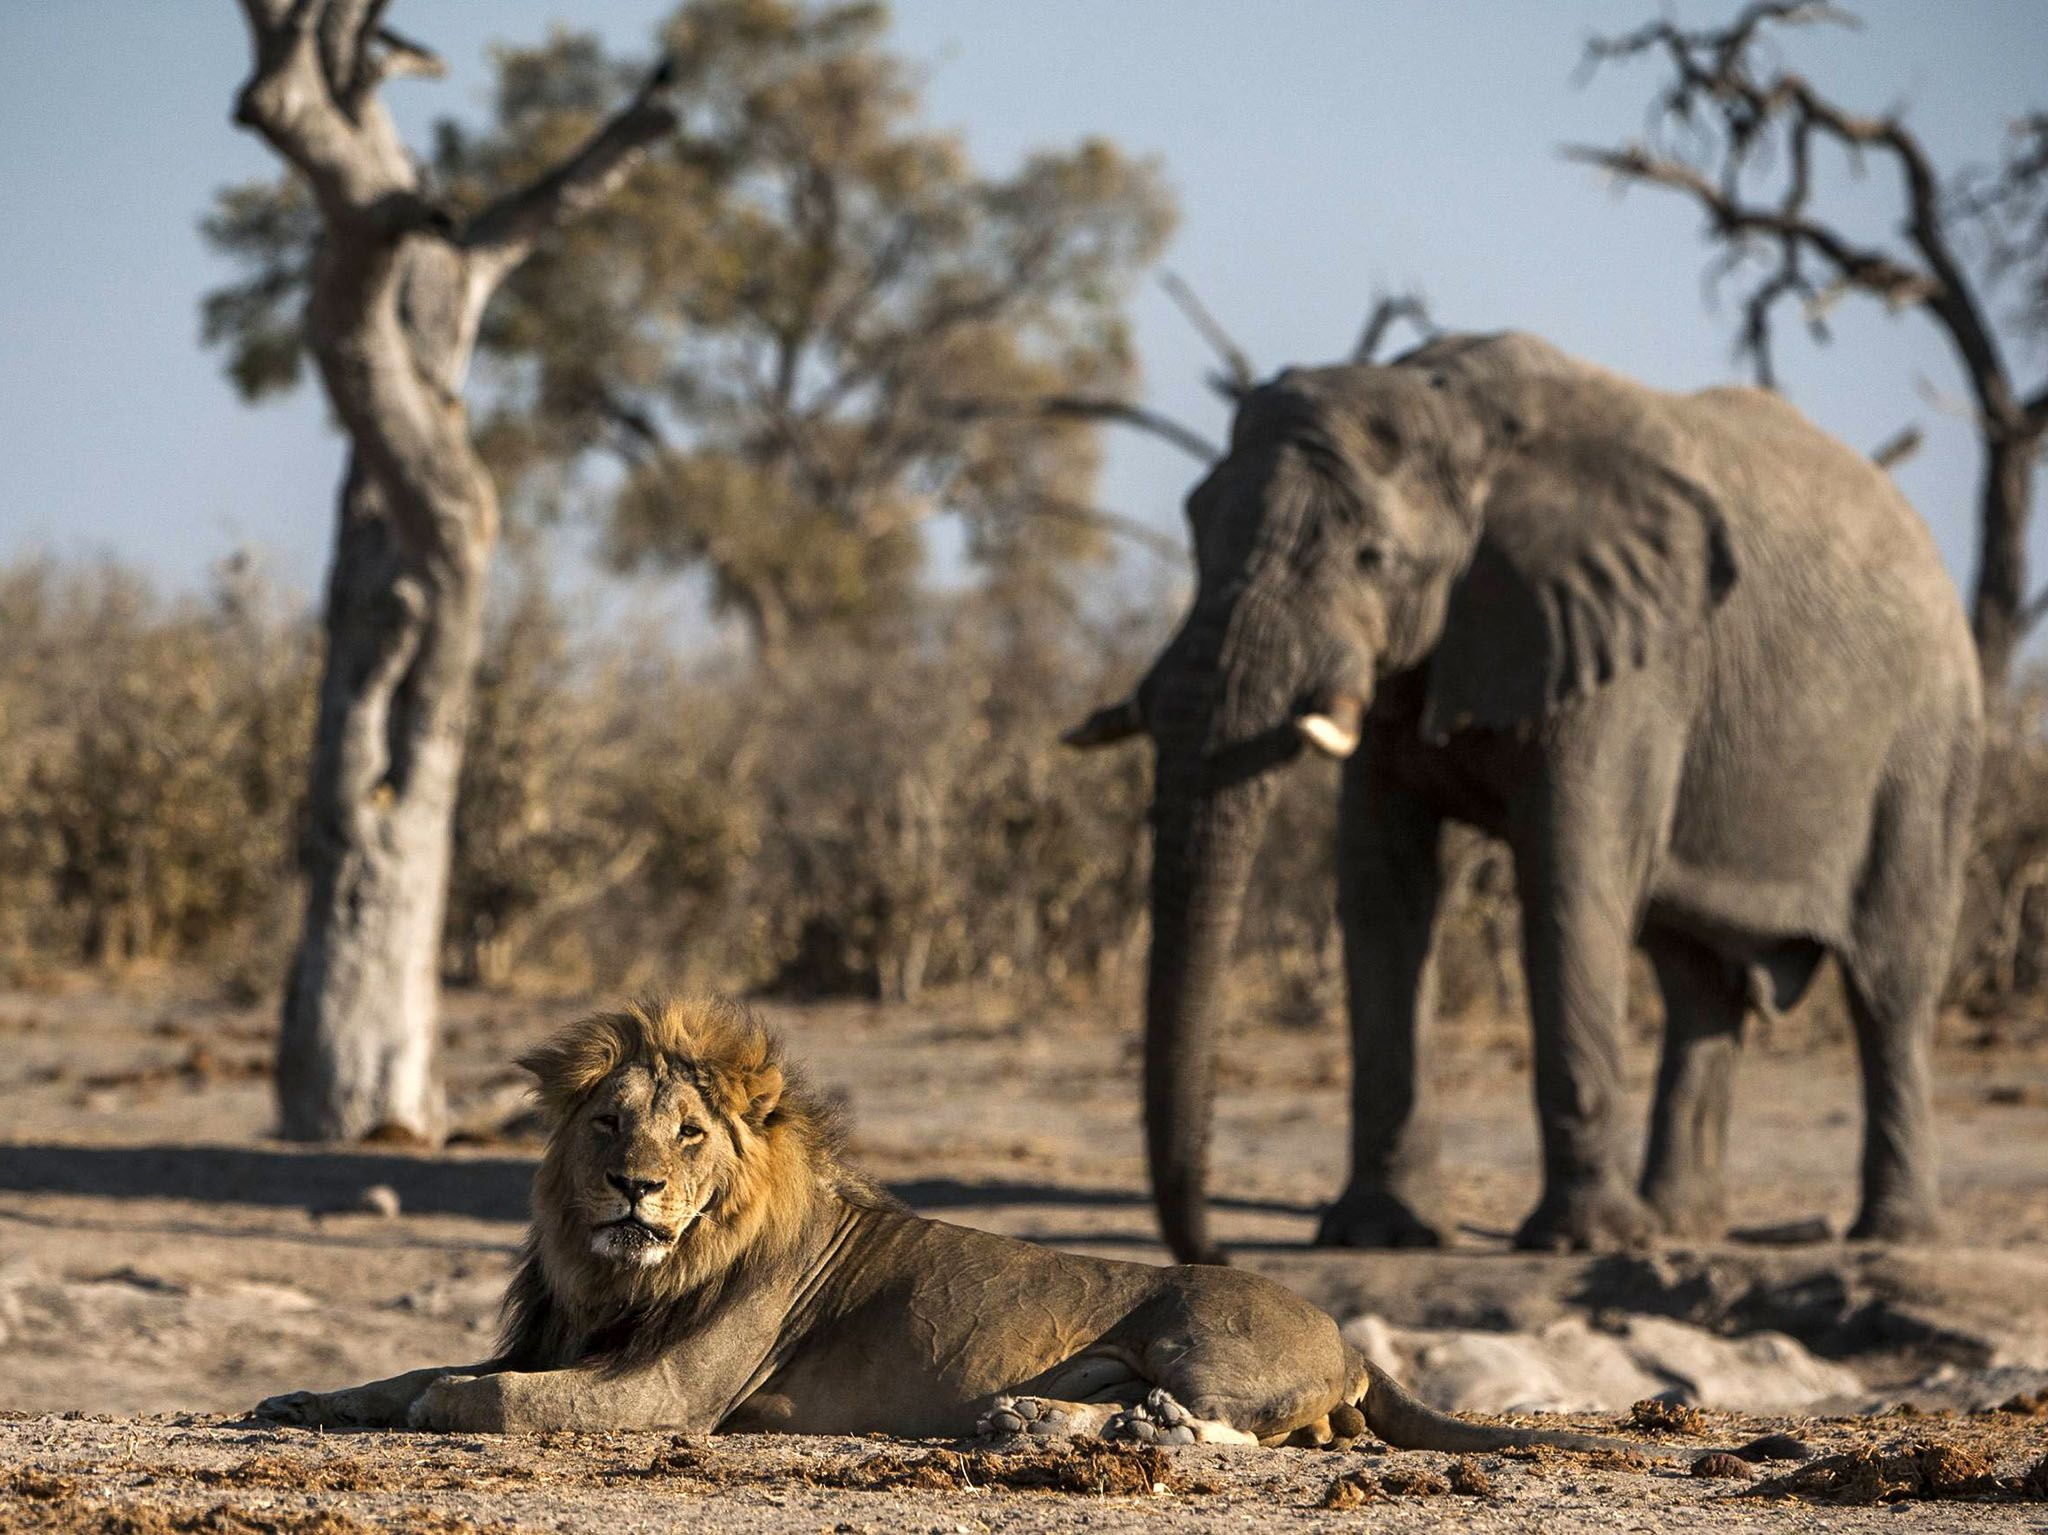 Botswana:  Water is scarce in Savute as the dry season begins. In this image a large male lion... [Photo of the day - March 2017]